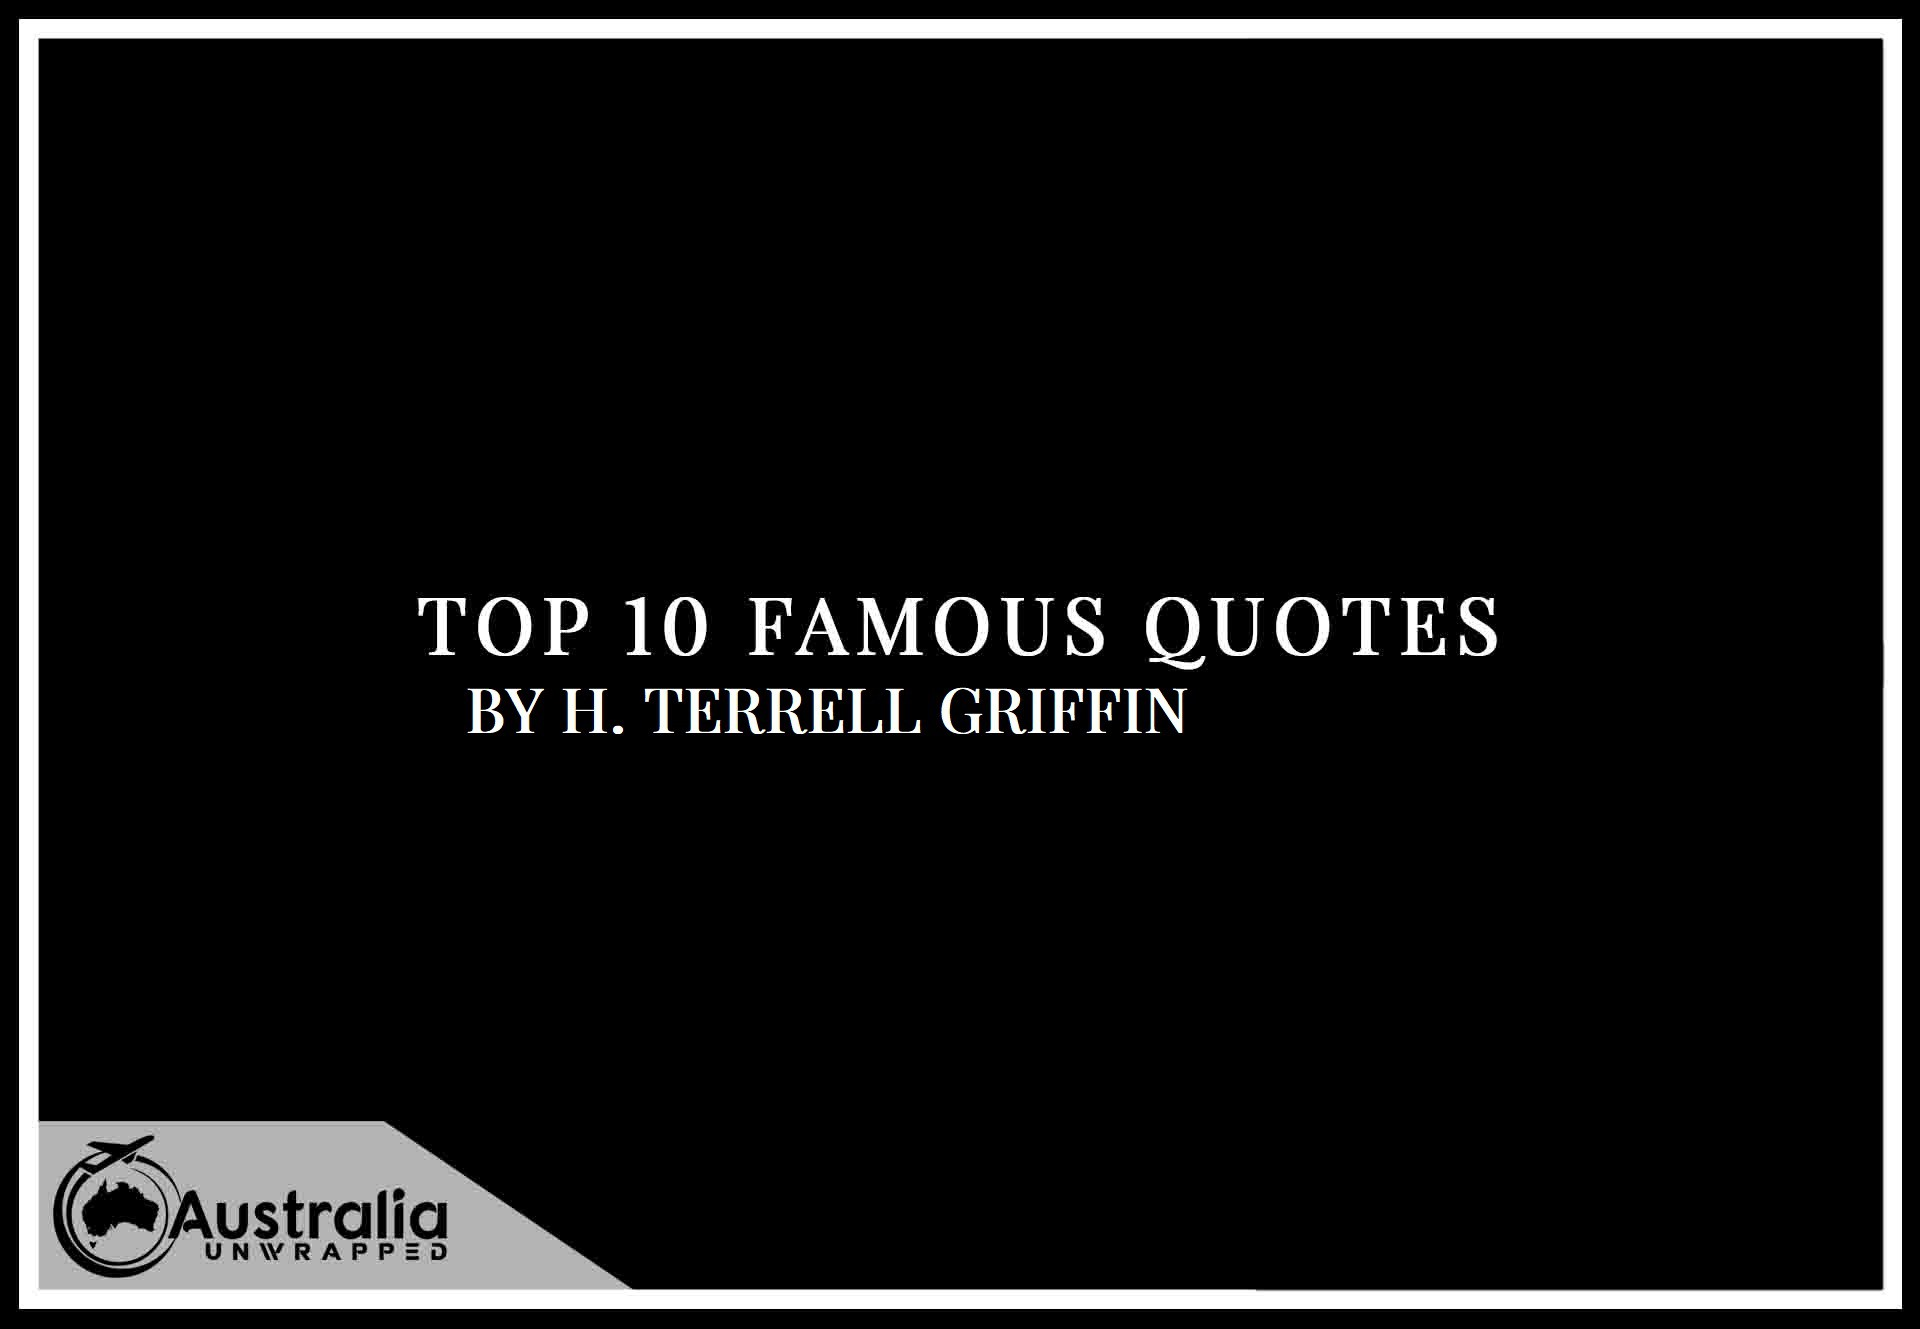 Top 10 Famous Quotes by Author H. Terrell Griffin